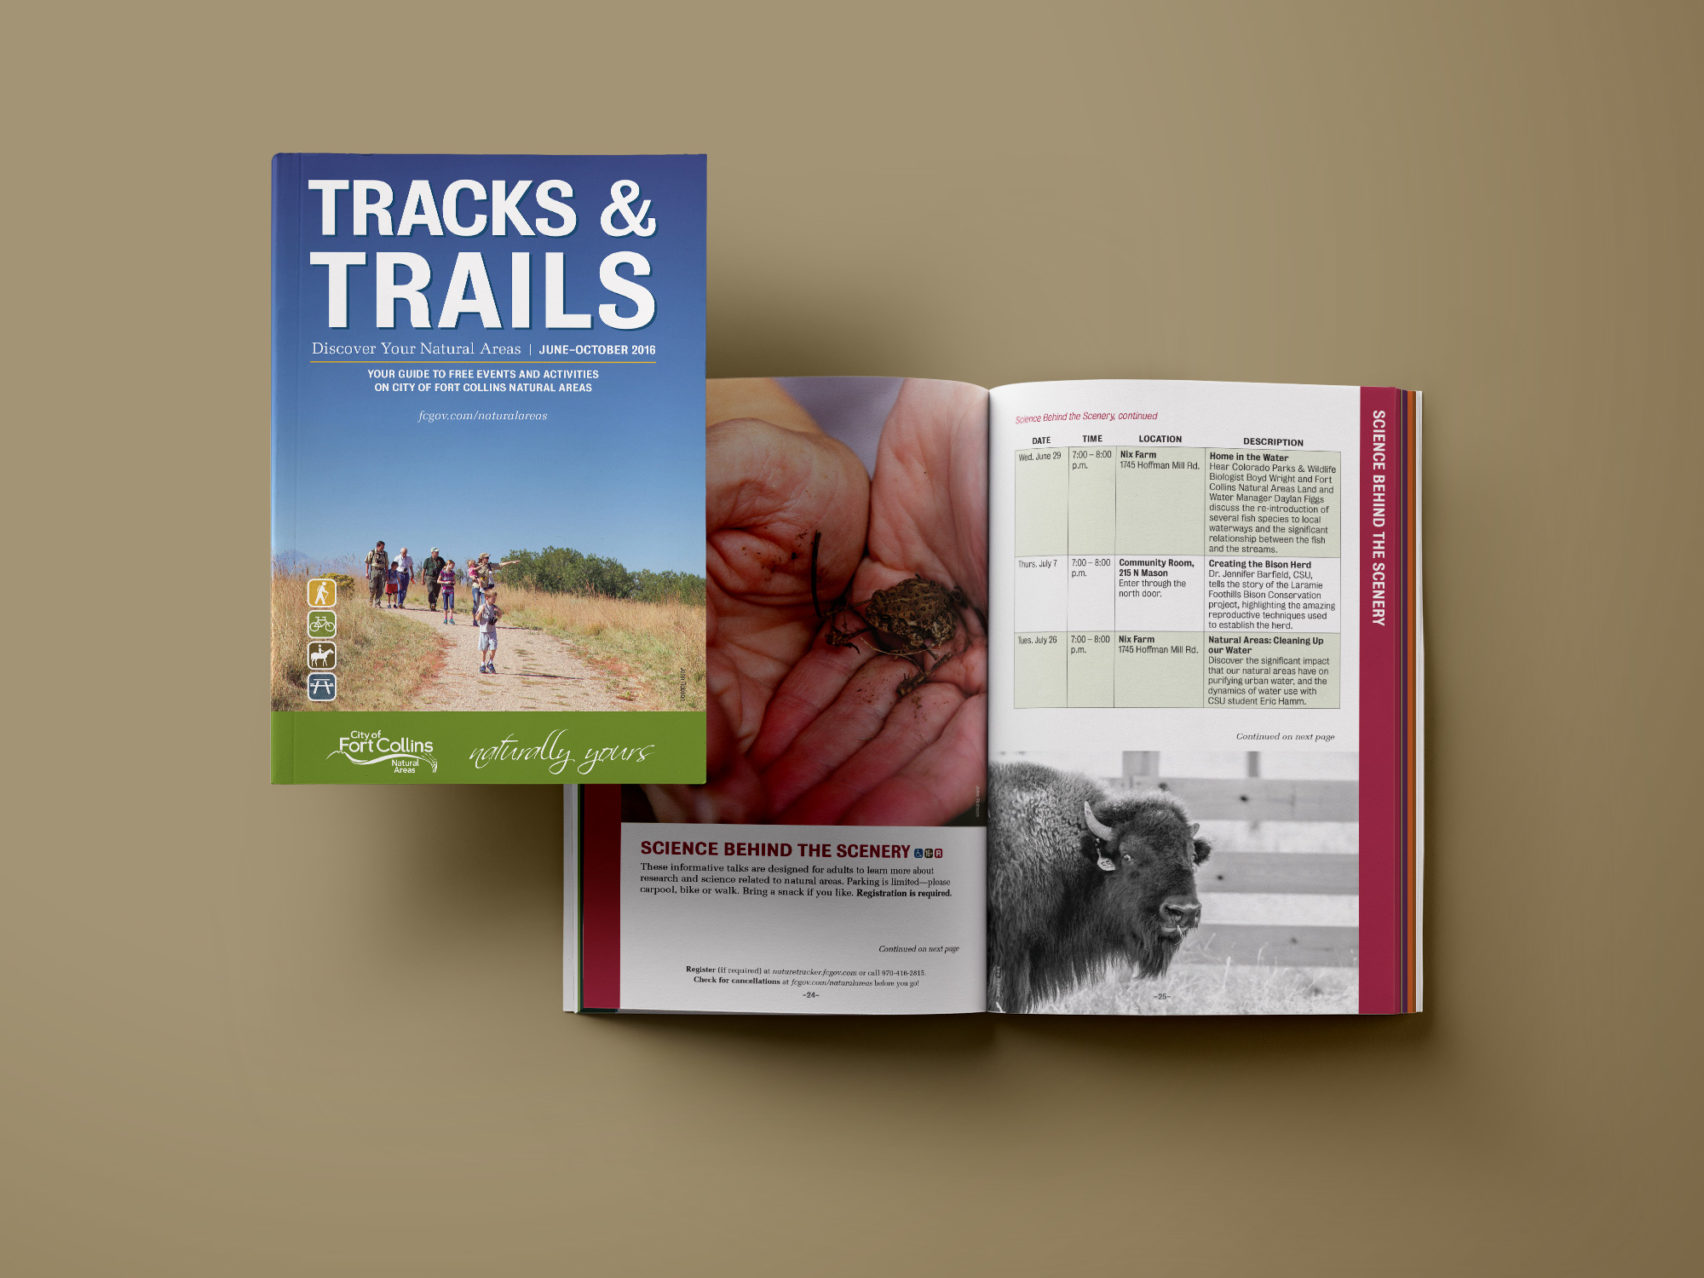 City of Fort Collins Tracks & Trails guide design and layout